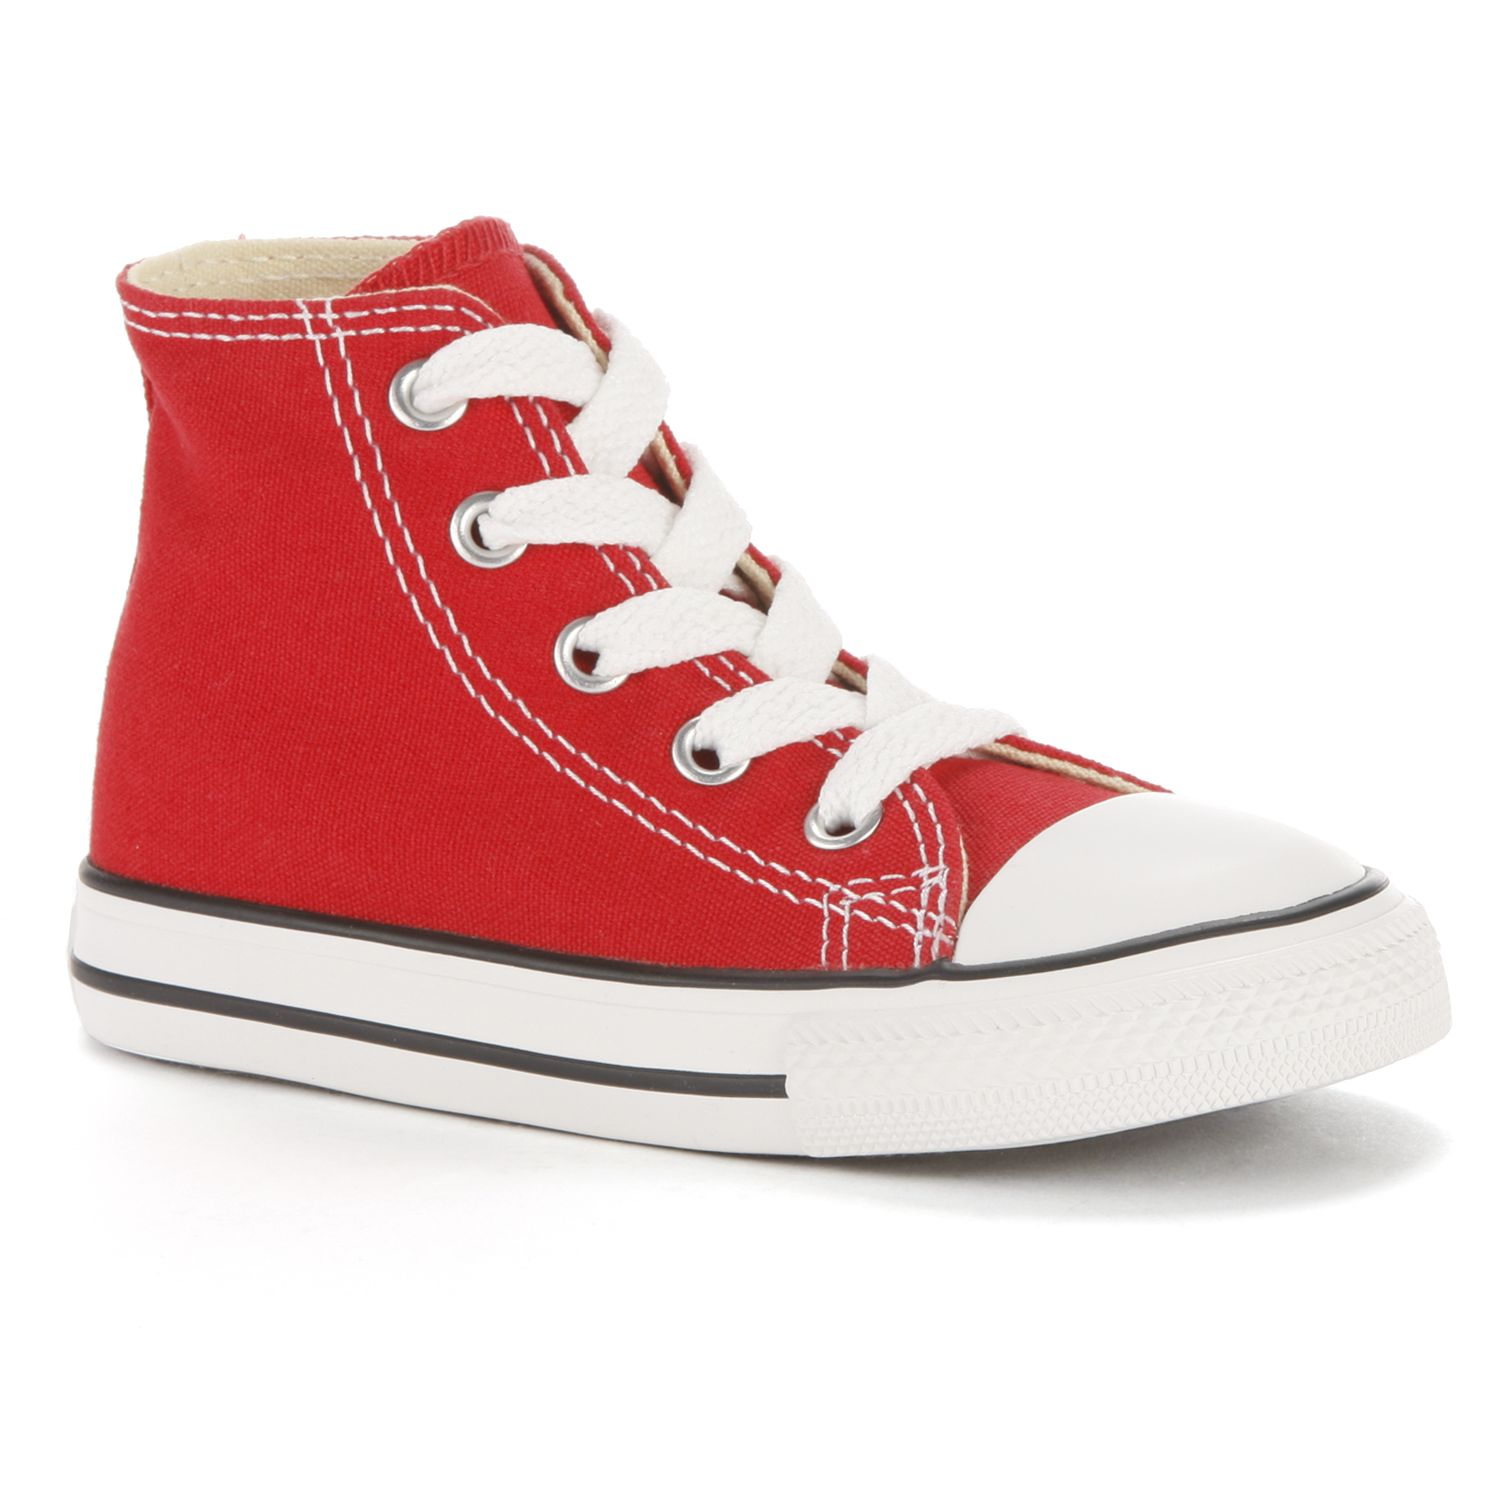 Converse Shoes High Tops For Girls british-flower-delivery.co.uk e541587b6